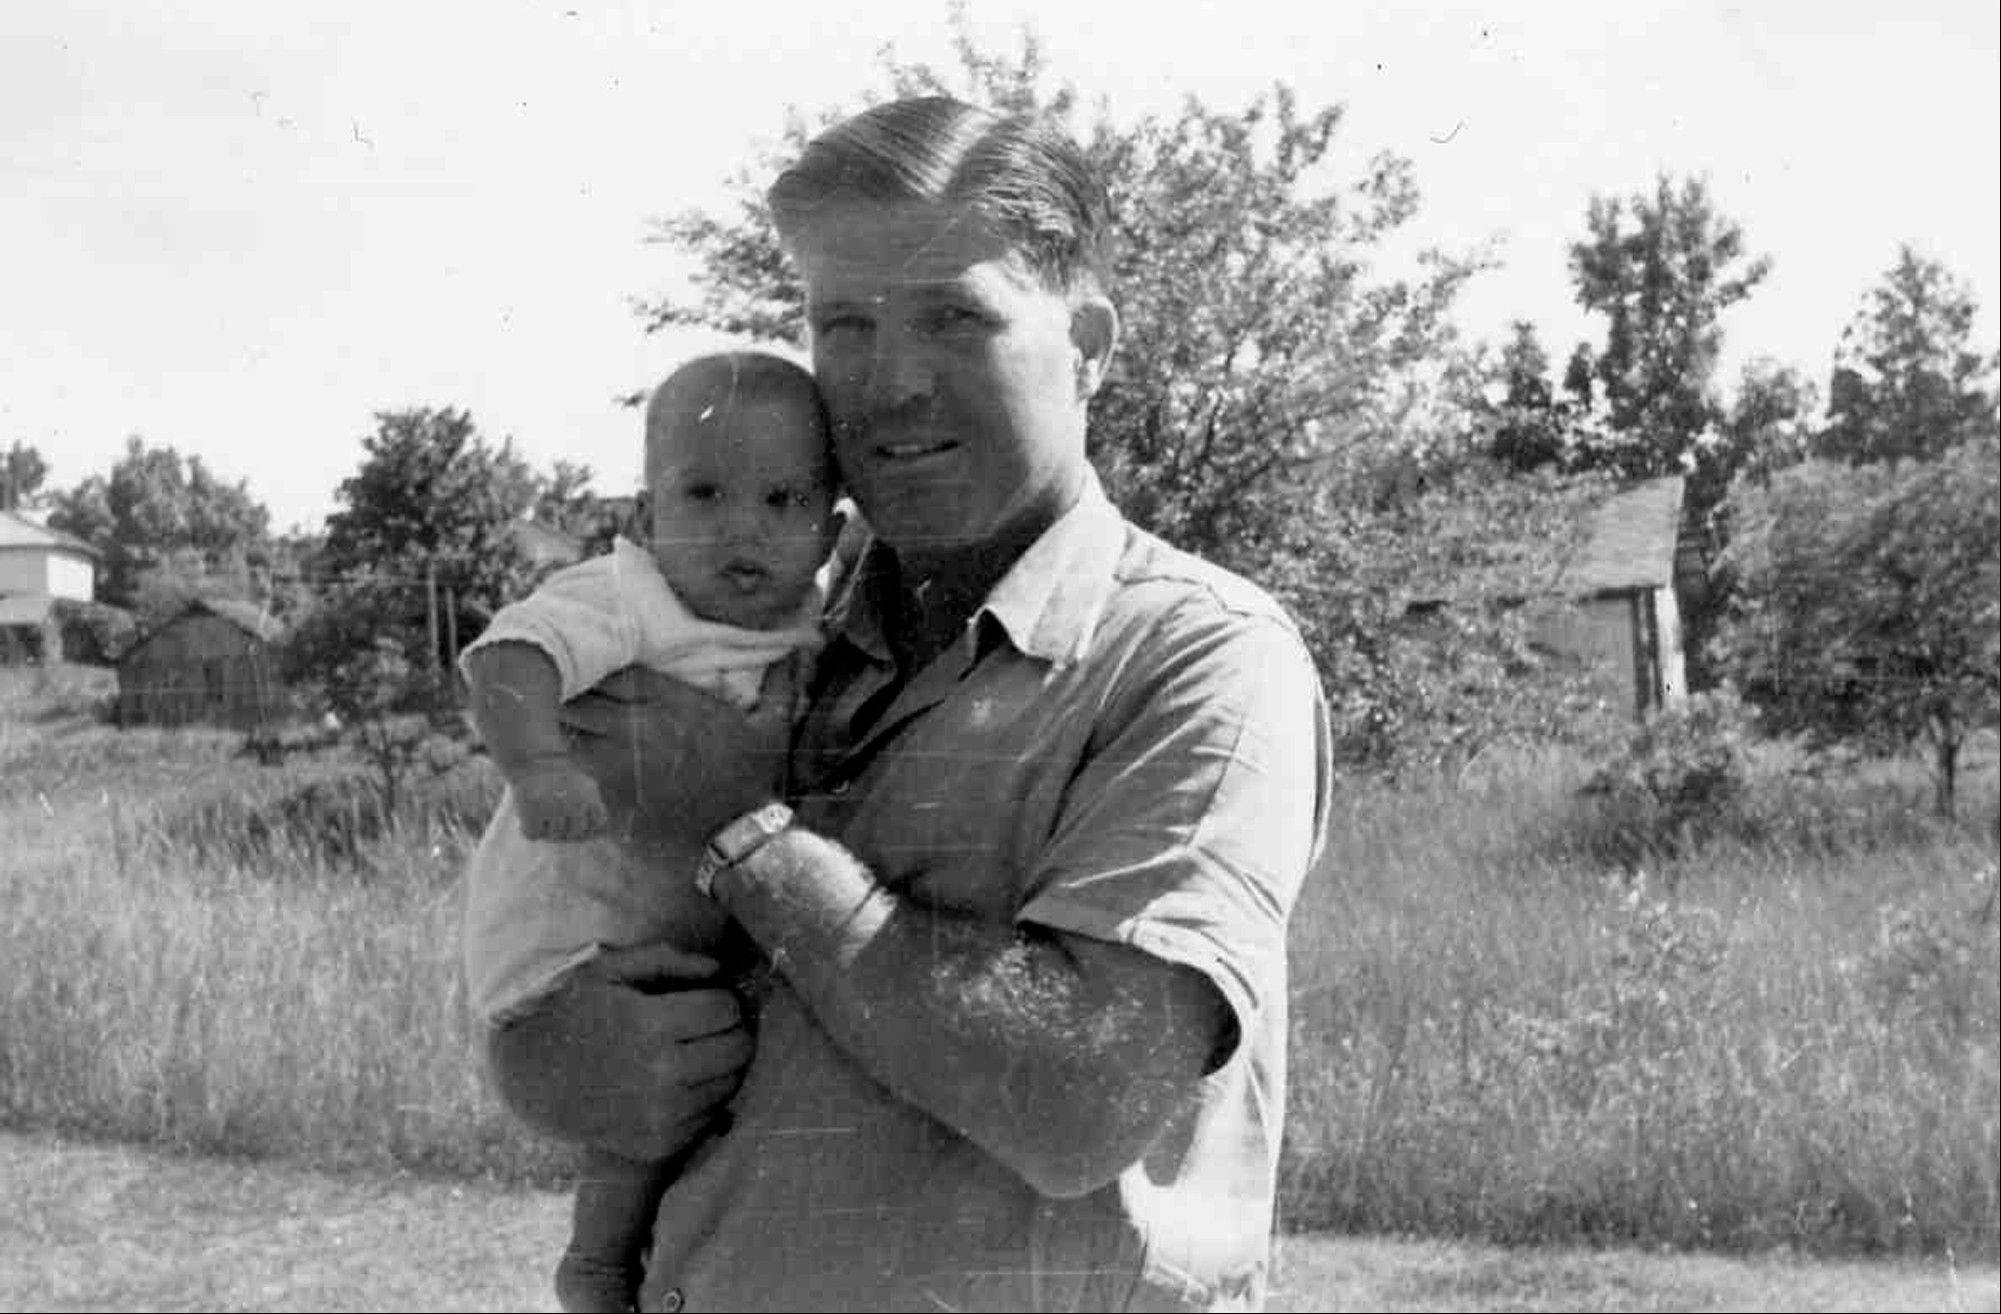 This 1947 photo provided by the Romney for President, Inc., location unknown, shows his father George Romney holding Mitt, who was born earlier that year. Long before Mitt Romney became the millionaire candidate from Massachusetts, he was his father' son, weeding the garden in the upscale suburb of Detroit where he grew up. He hated the chore. But he idolized the man who made him do it - George Romney, the outspoken, no-nonsense, auto executive turned politician.